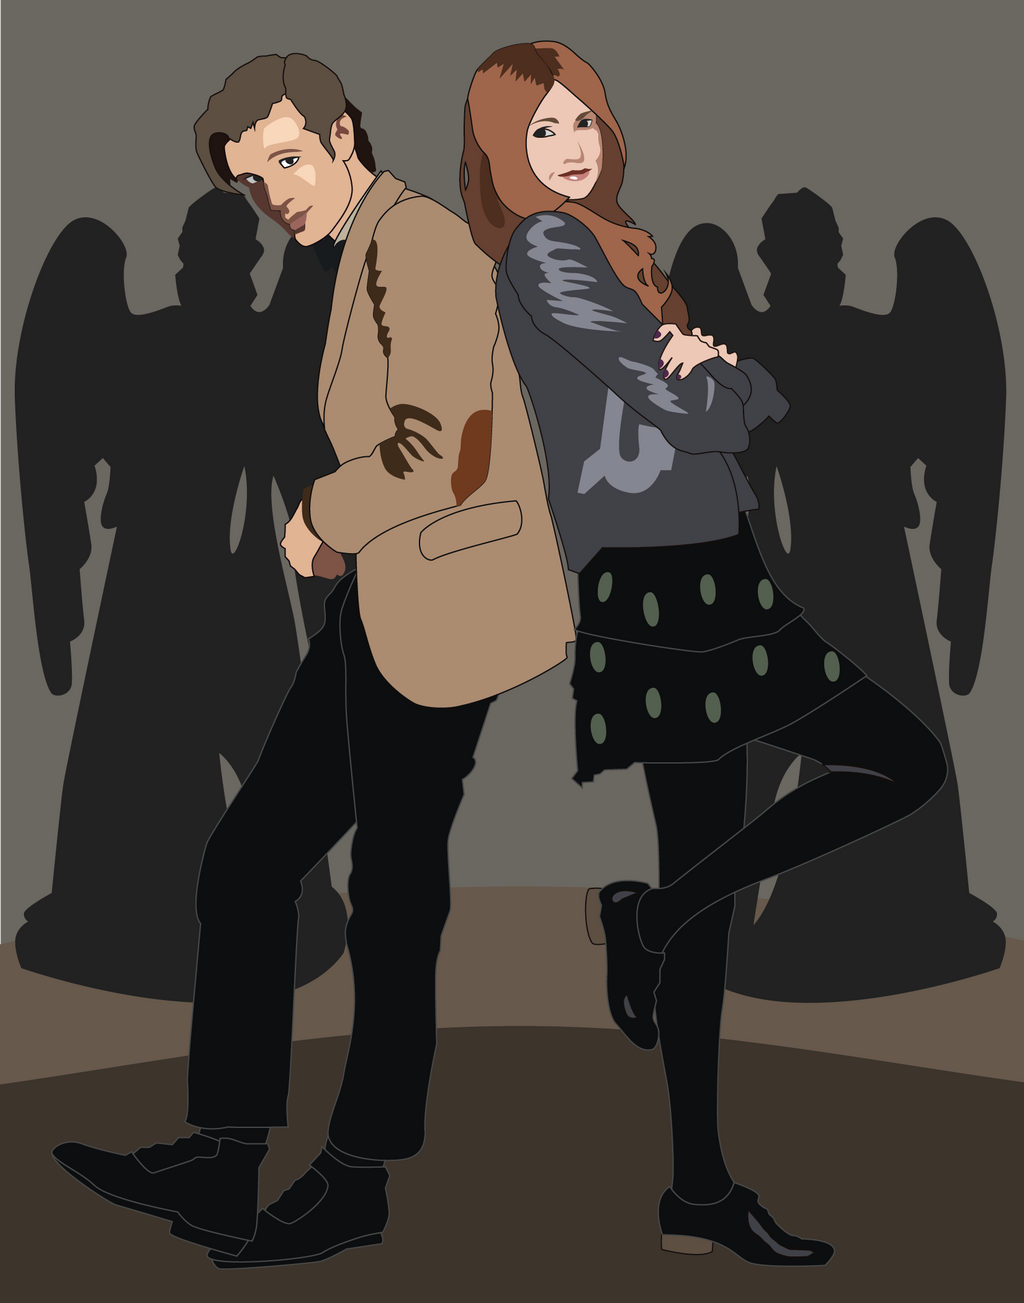 Shadowbox Mock up: 11th Doctor and Amy by The-Paper-Pony on DeviantArt